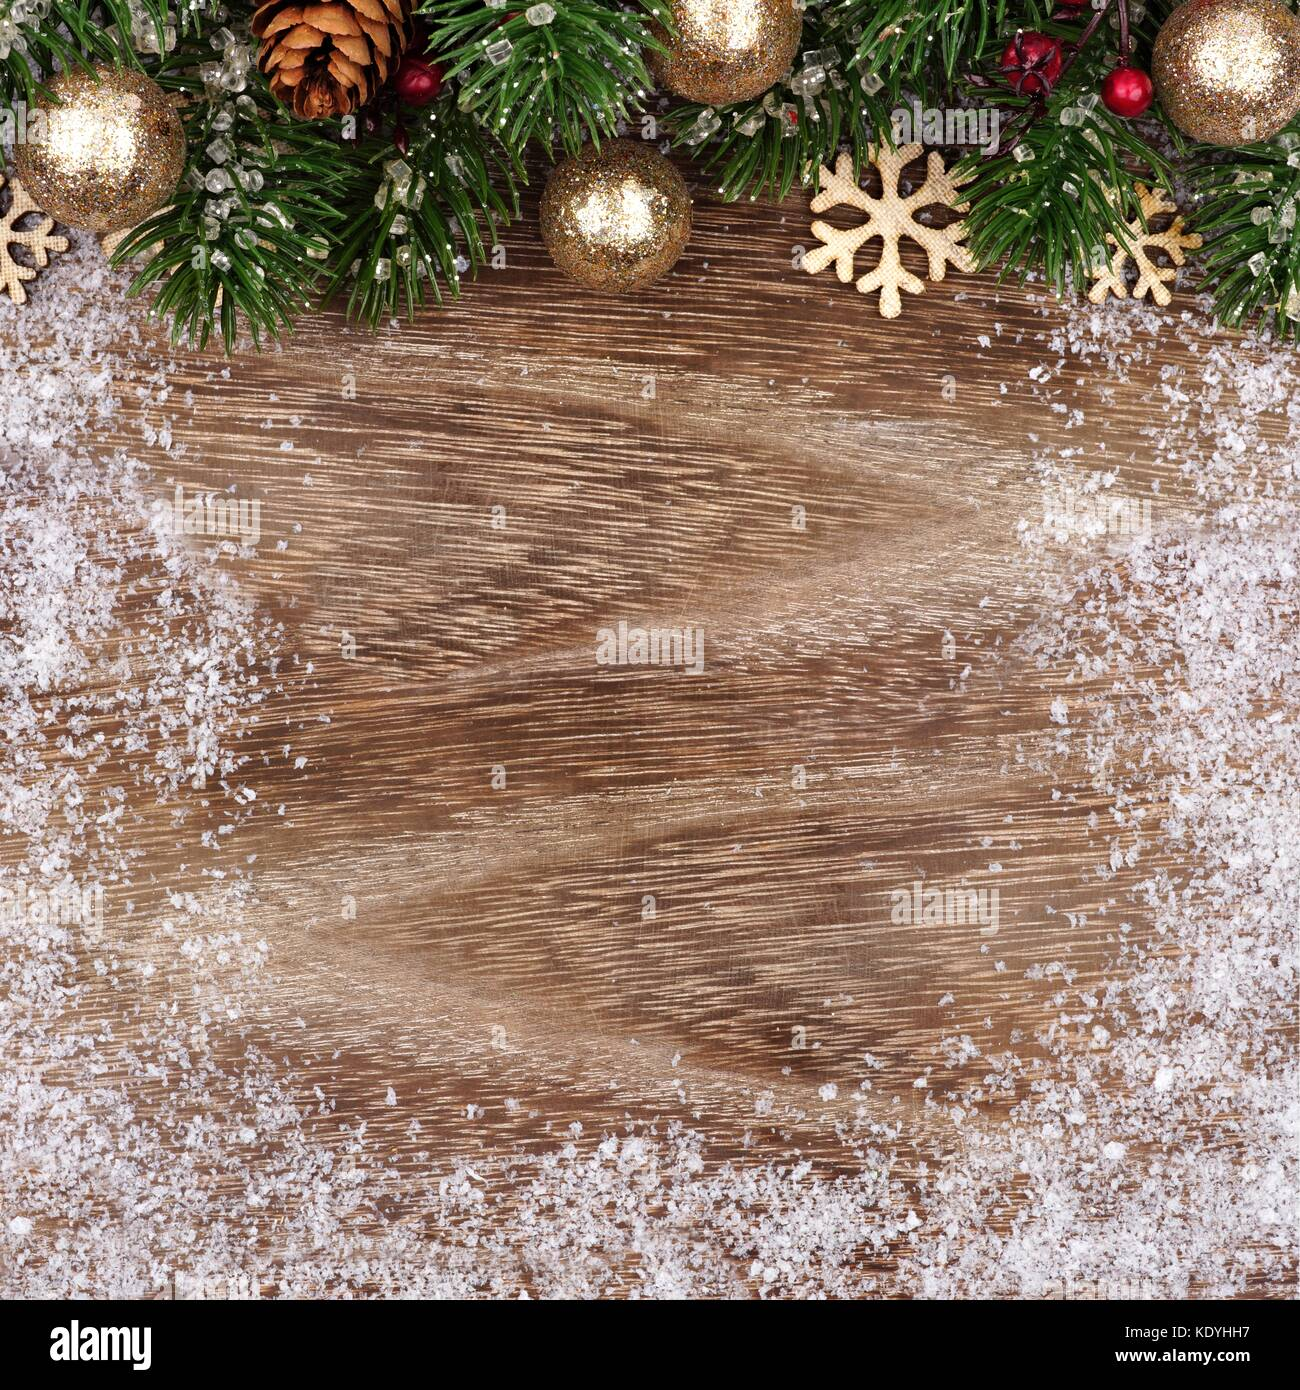 Christmas Top Border With Gold Ornaments Branches And Snow Frame On A Rustic Wood Background